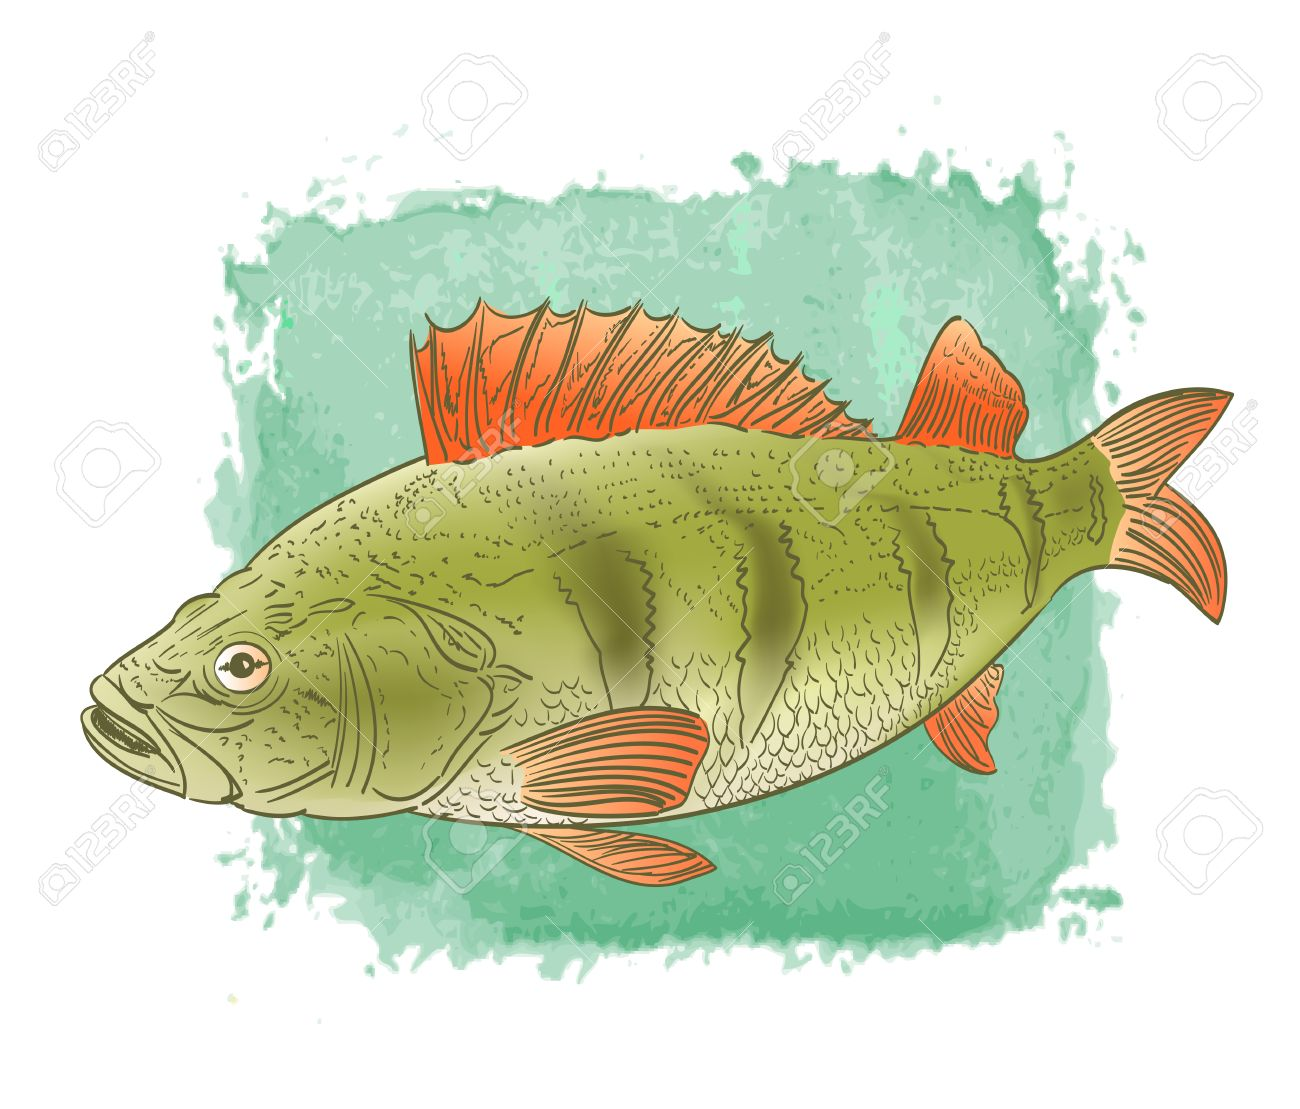 Freshwater fish clipart - Vector Freshwater Fish Color Drawing On Watercolor Background